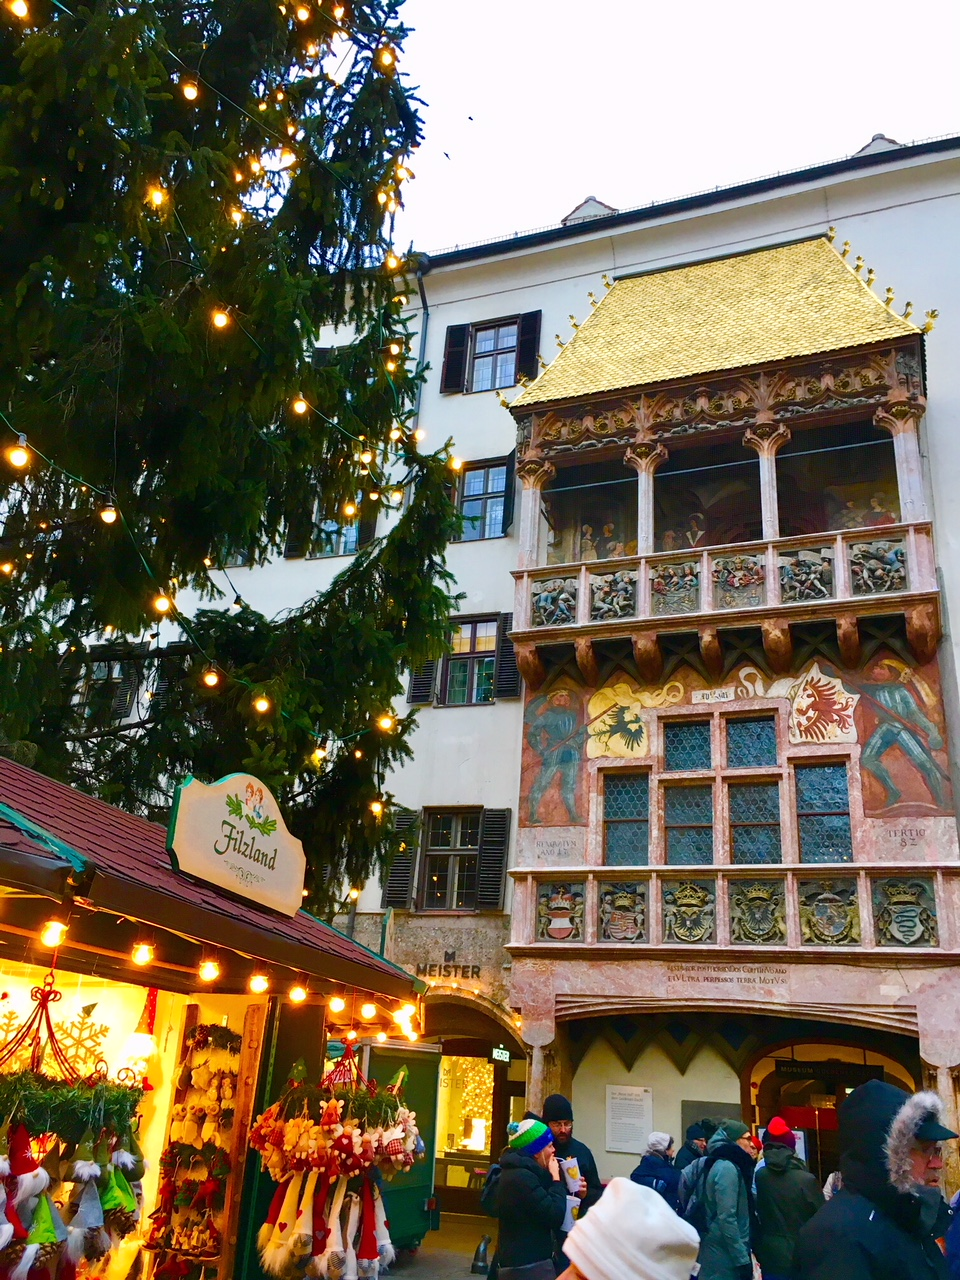 The Little Golden Roof At The Christmas Markets In